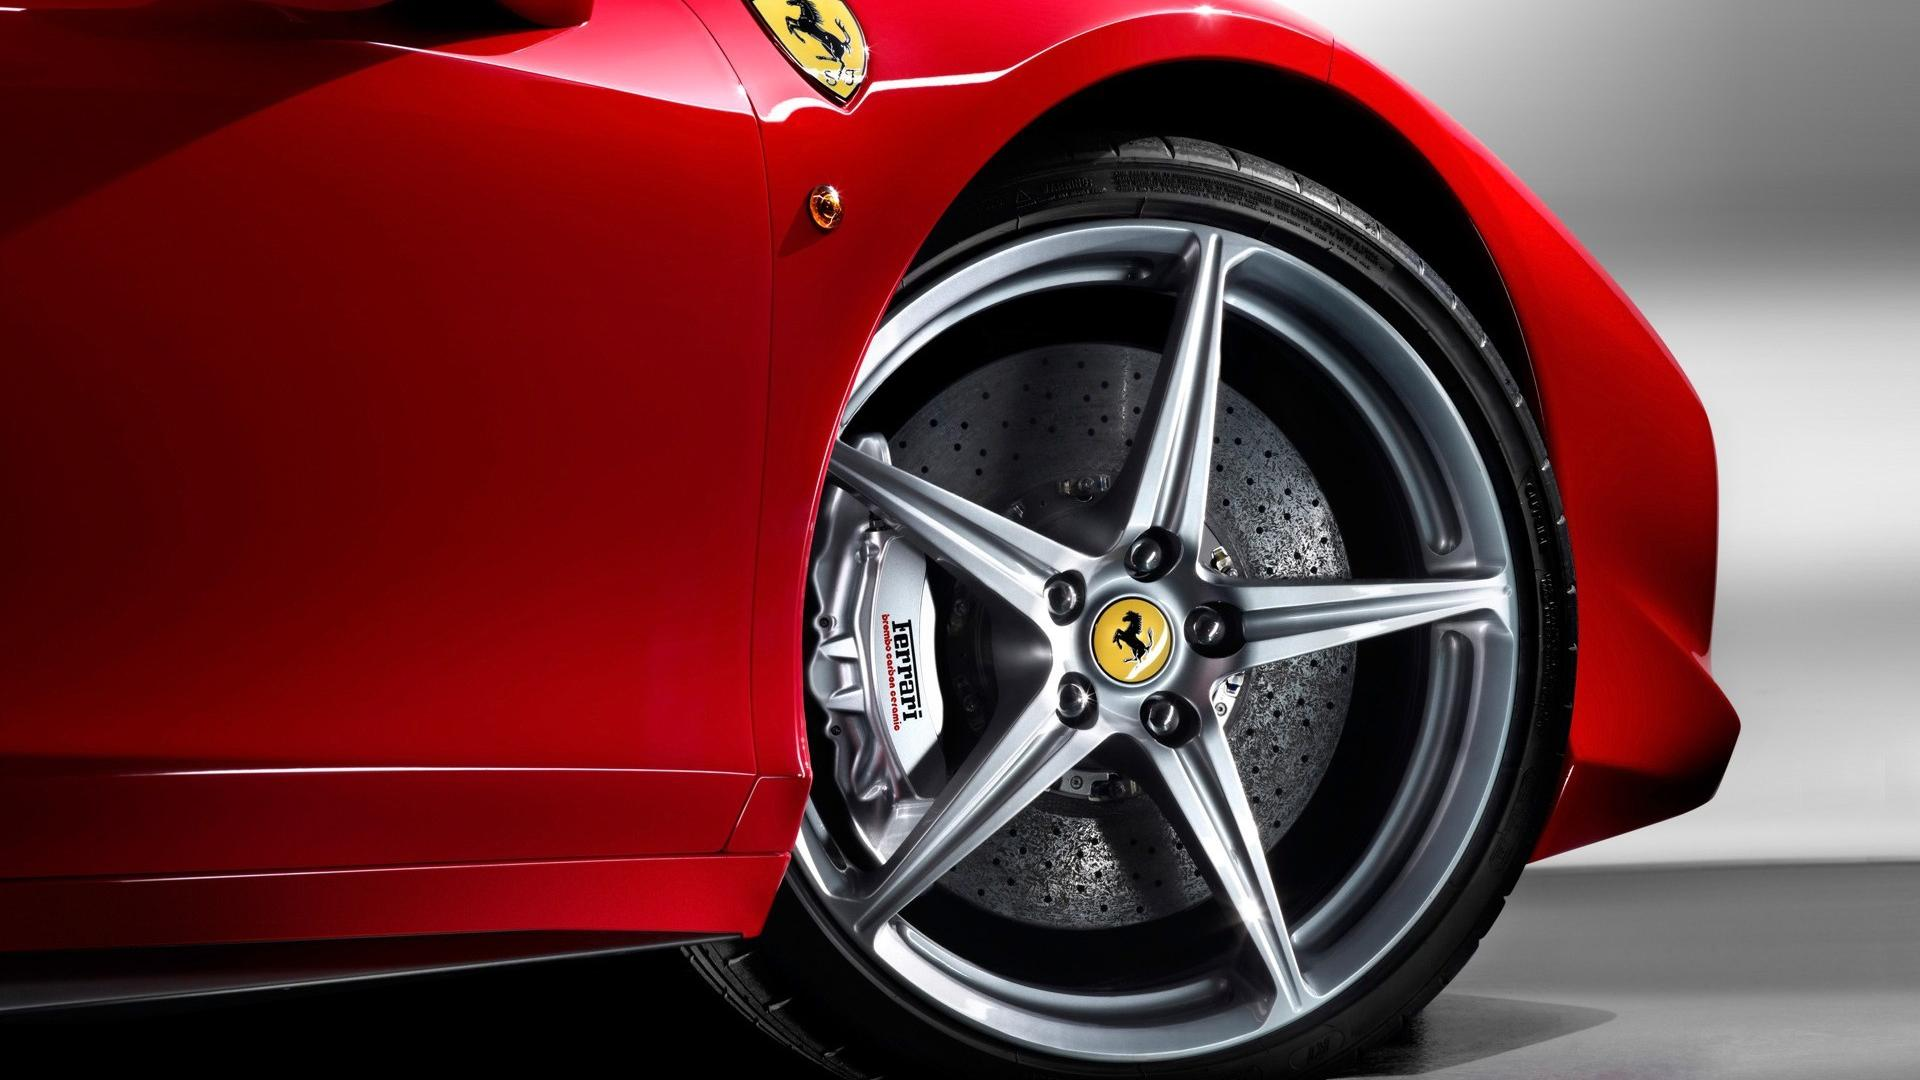 Ferrari HD Wallpapers Free Download